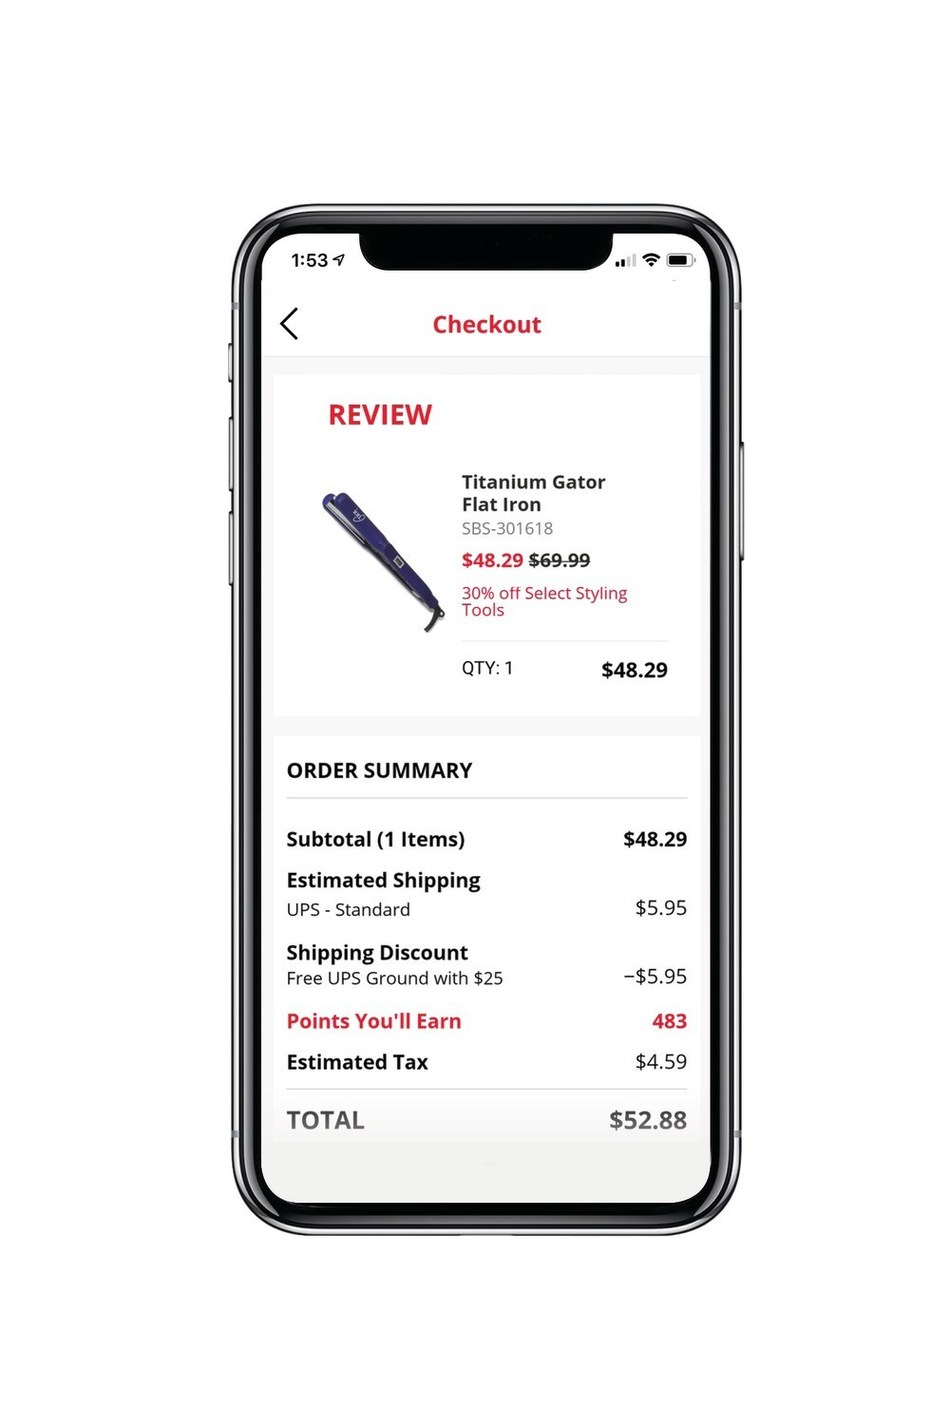 Mobile Checkout Made Simple